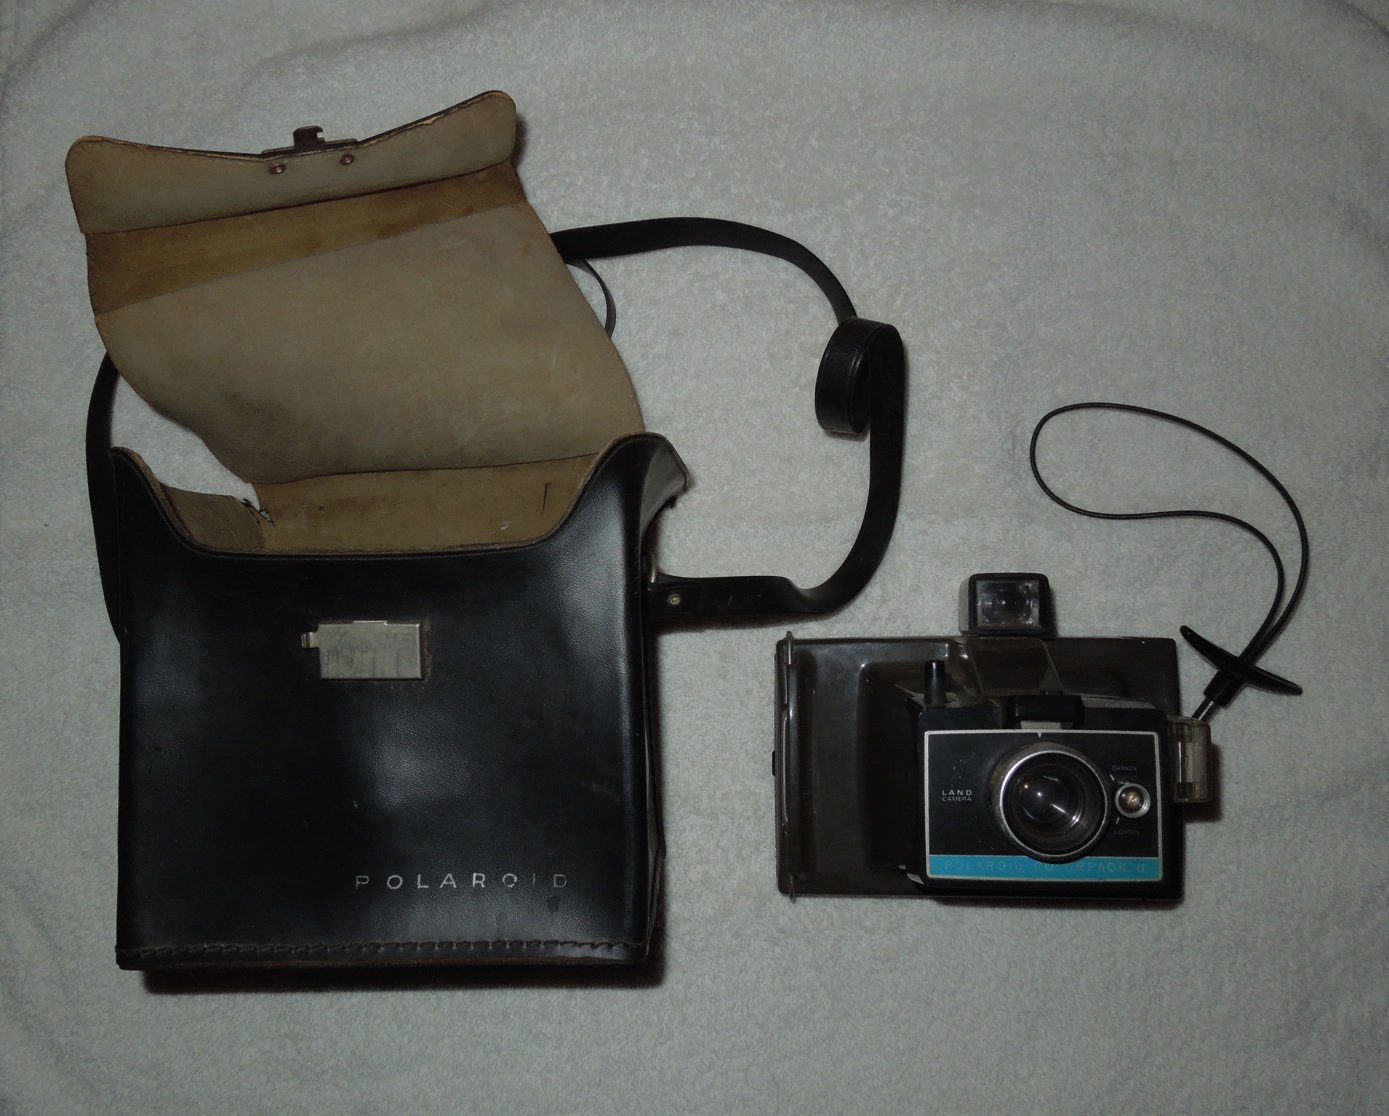 Polaroid - Colorpack II Instant Land Camera - Includes Original Case - Vintage